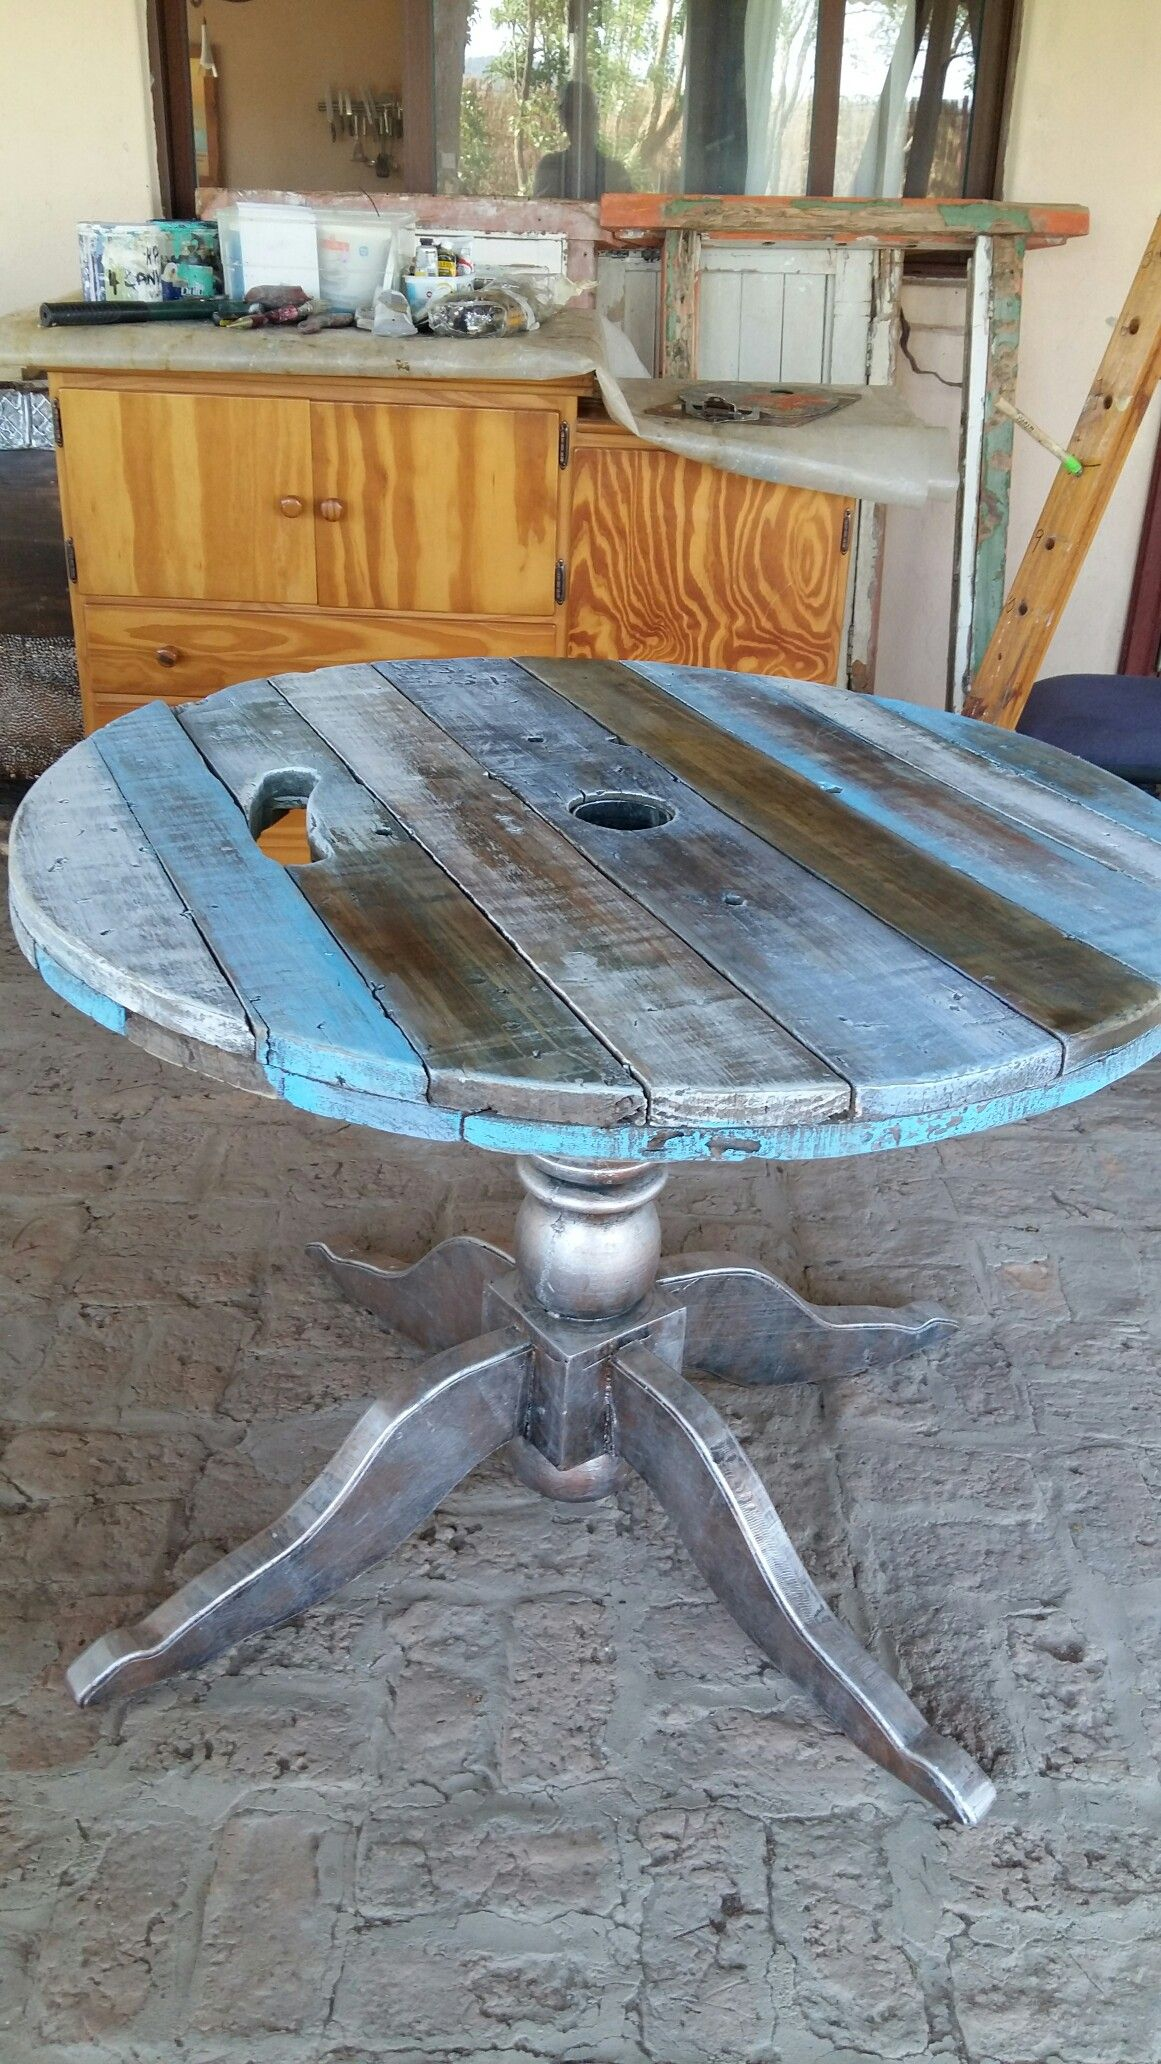 Garden and home zambia  Cable wheel table by karin in zambia  architectural salvage